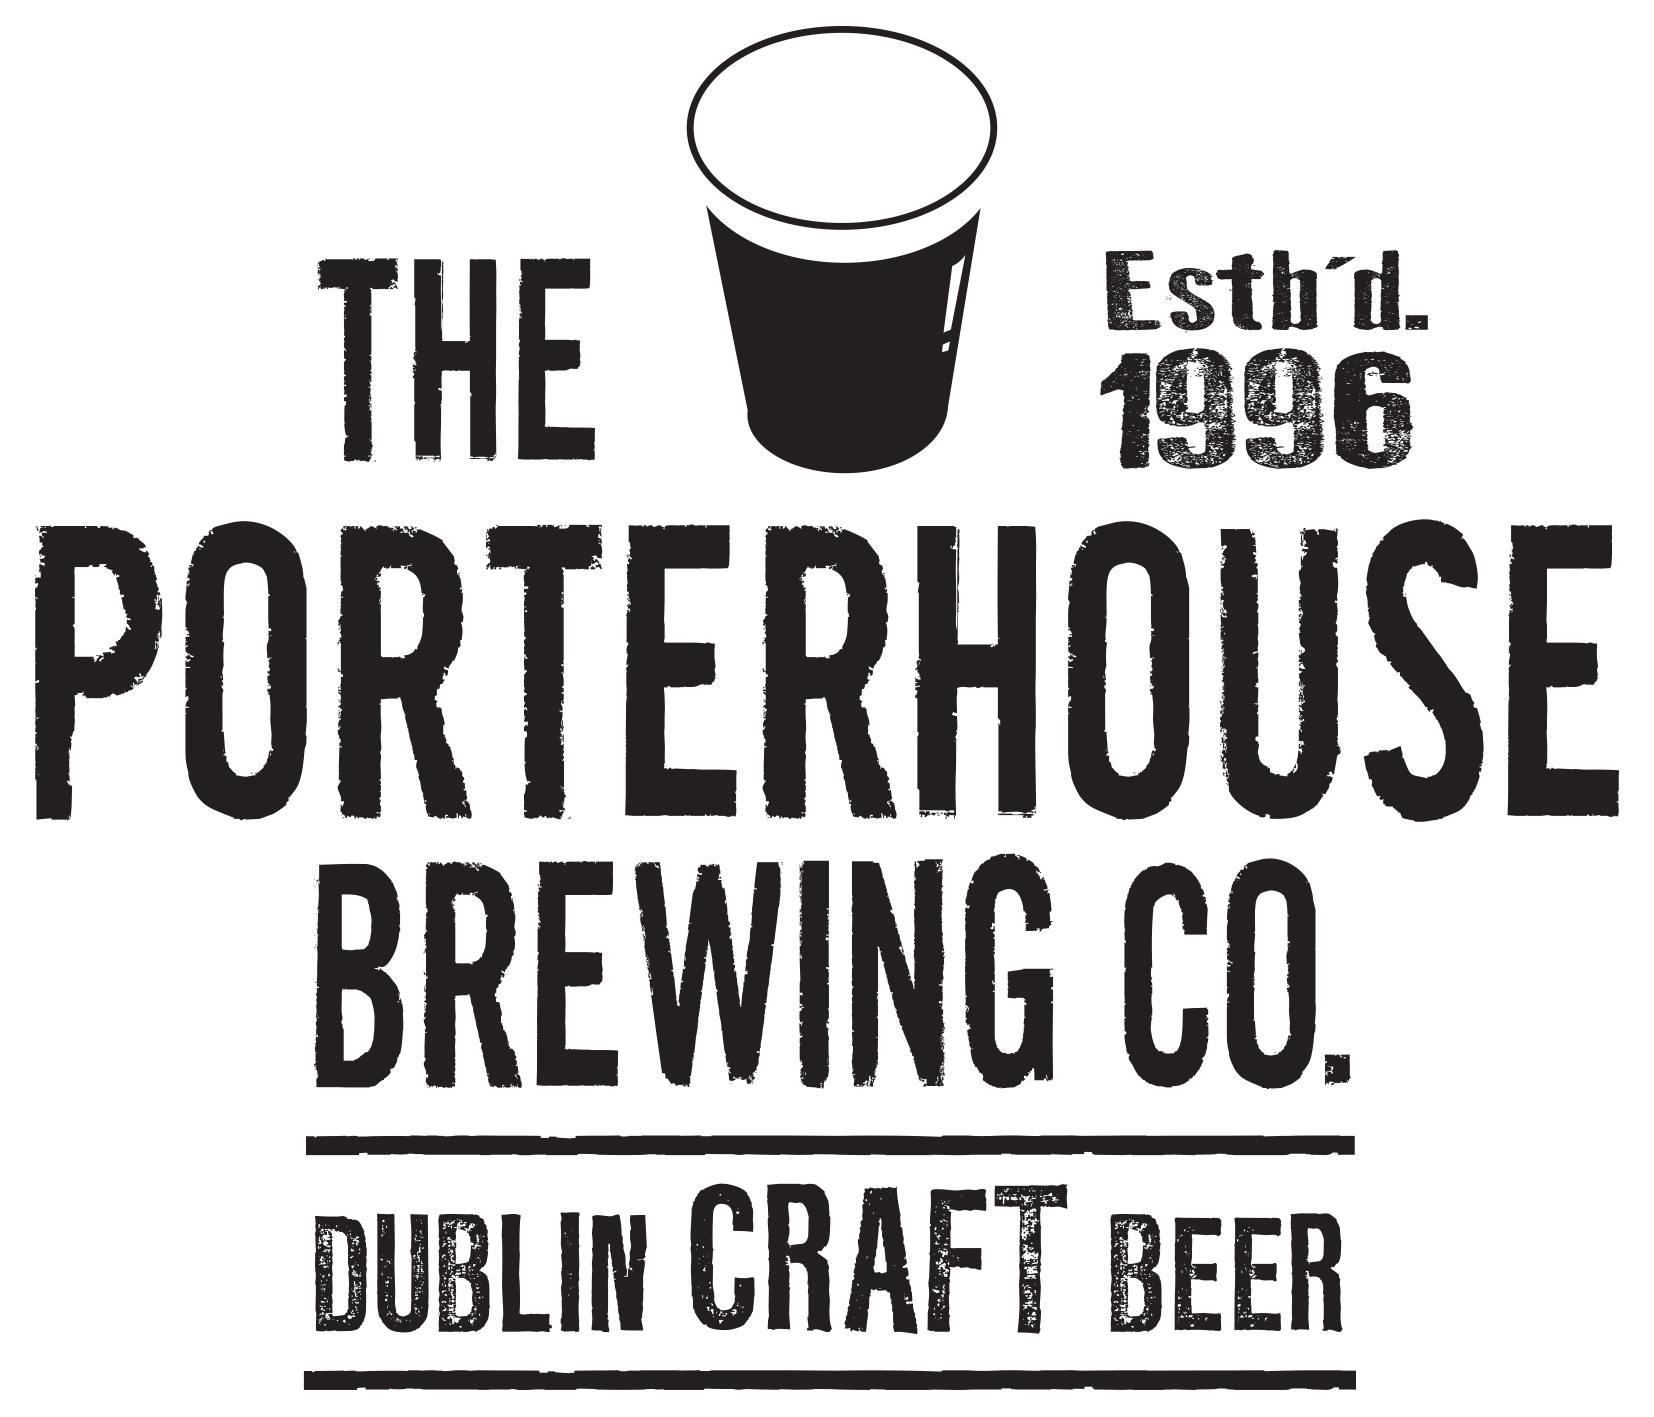 The Porterhouse Brewing Co.